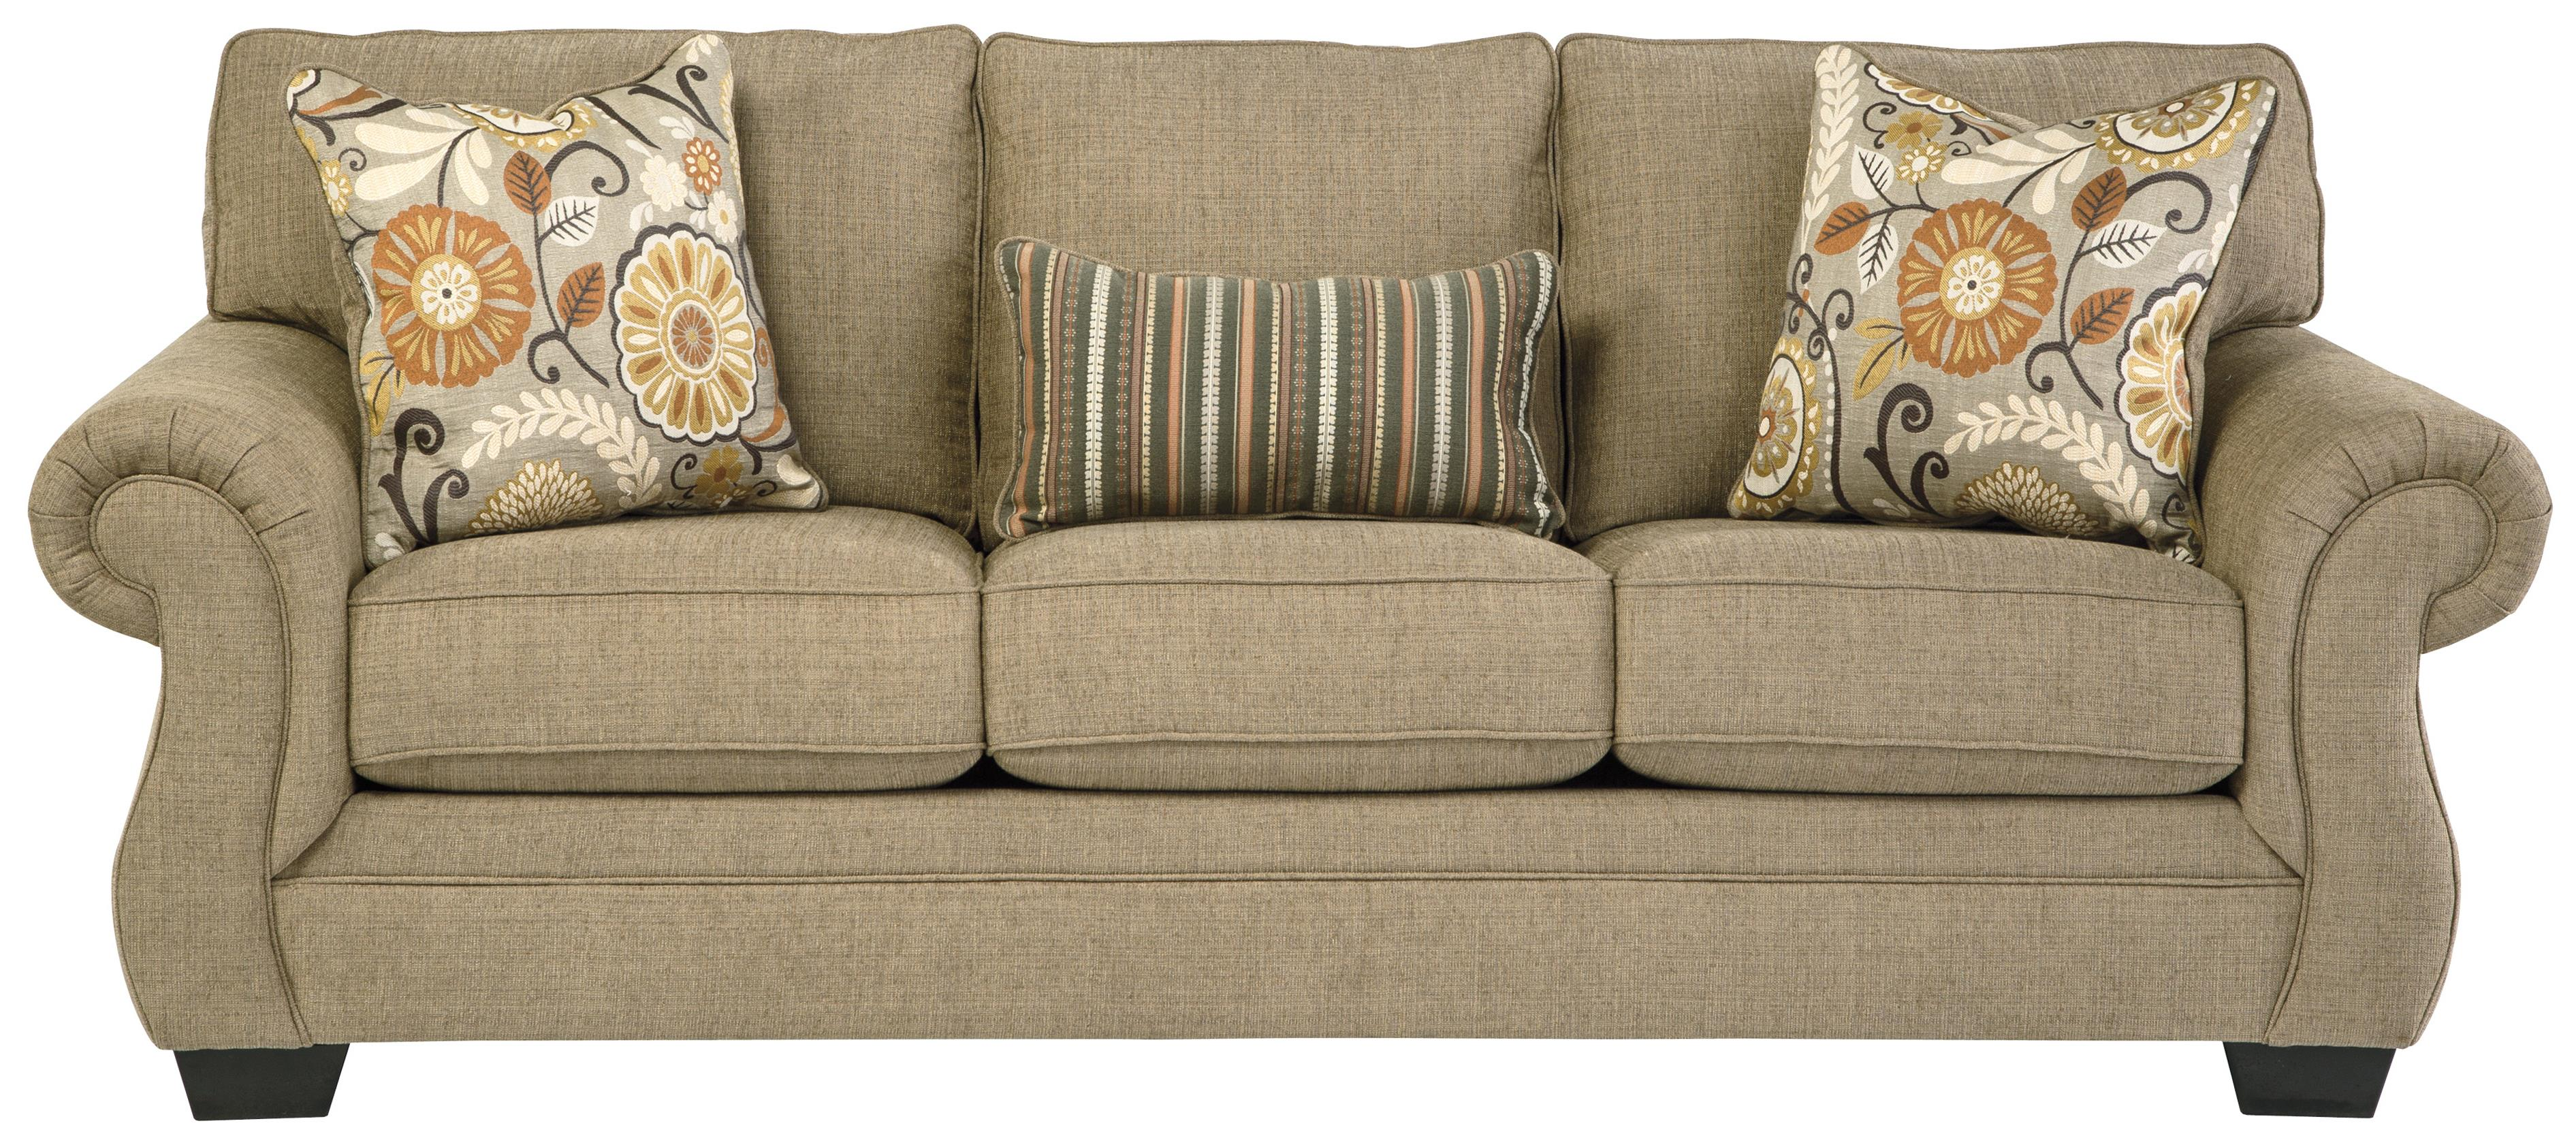 Transitional Sofa With Coil Seating By Benchcraft Wolf And Gardiner Wolf Furniture